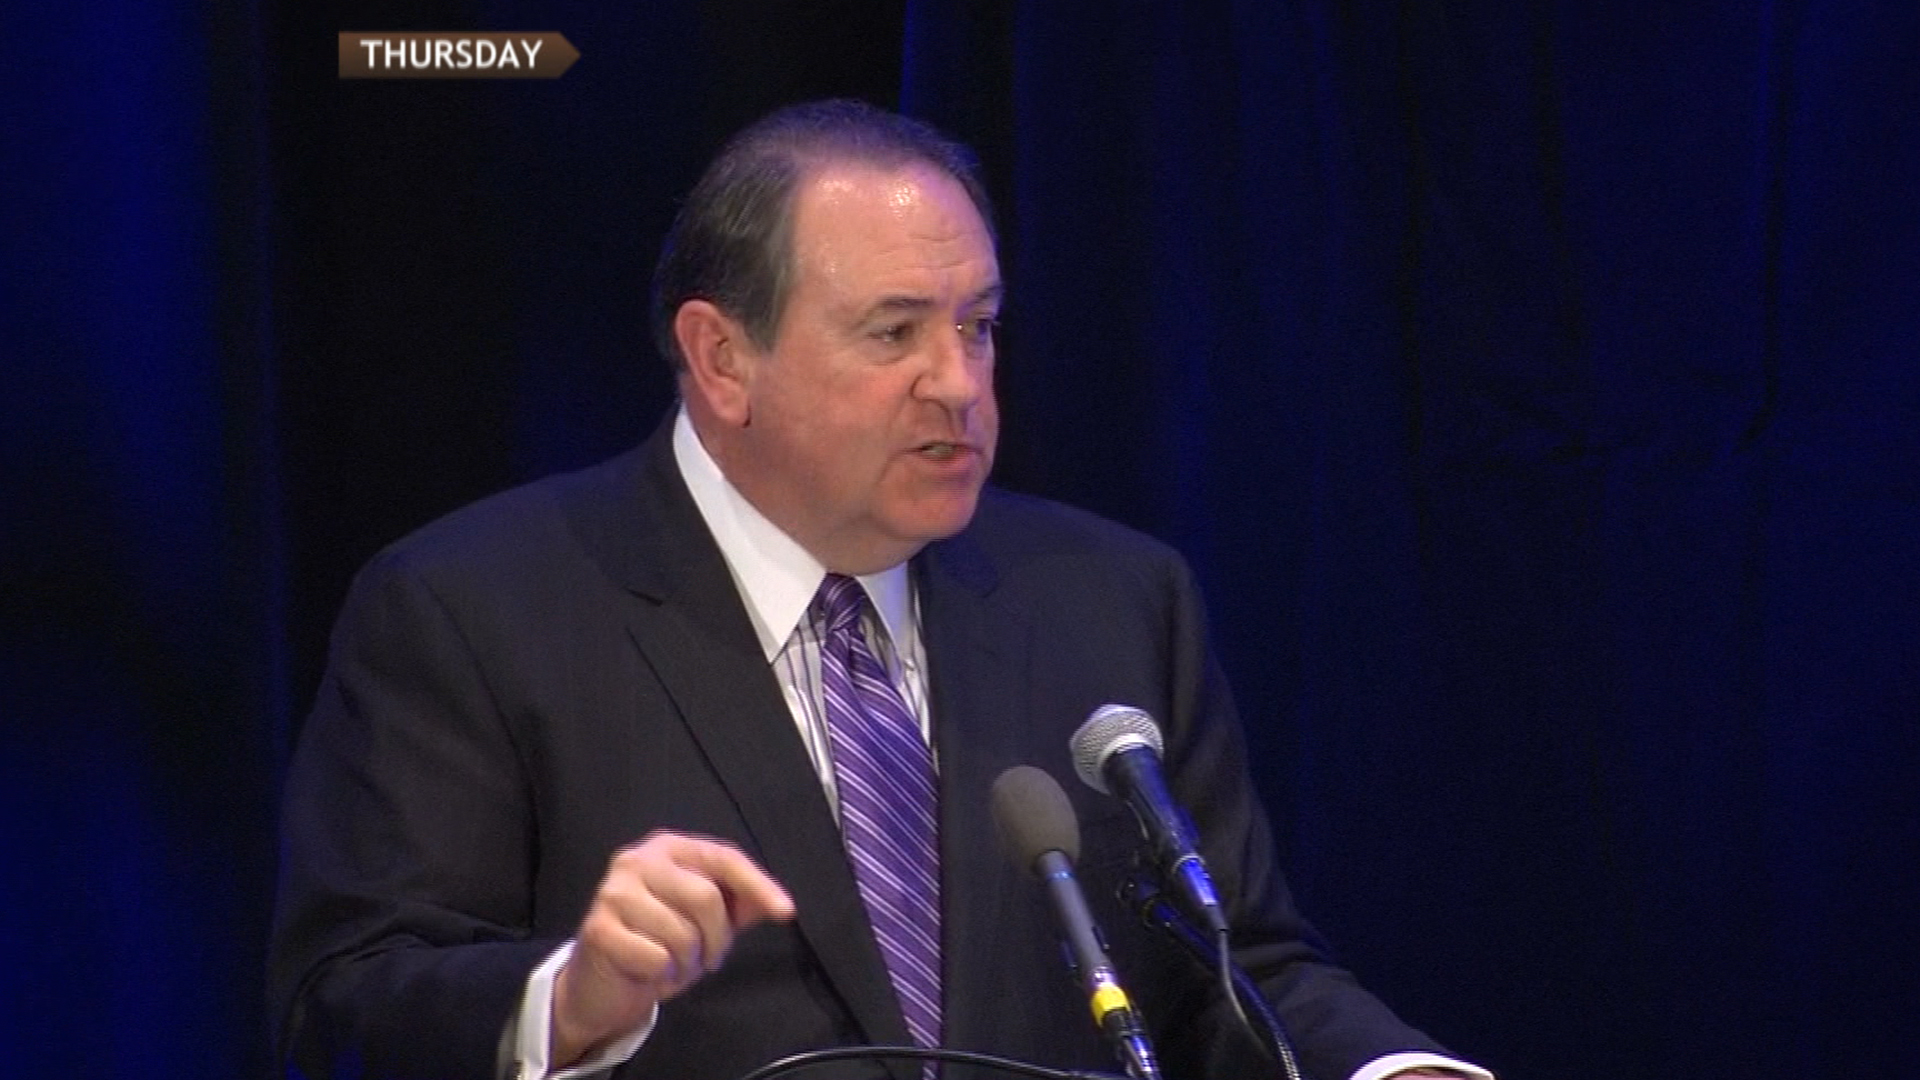 The facts of life according to Mike Huckabee